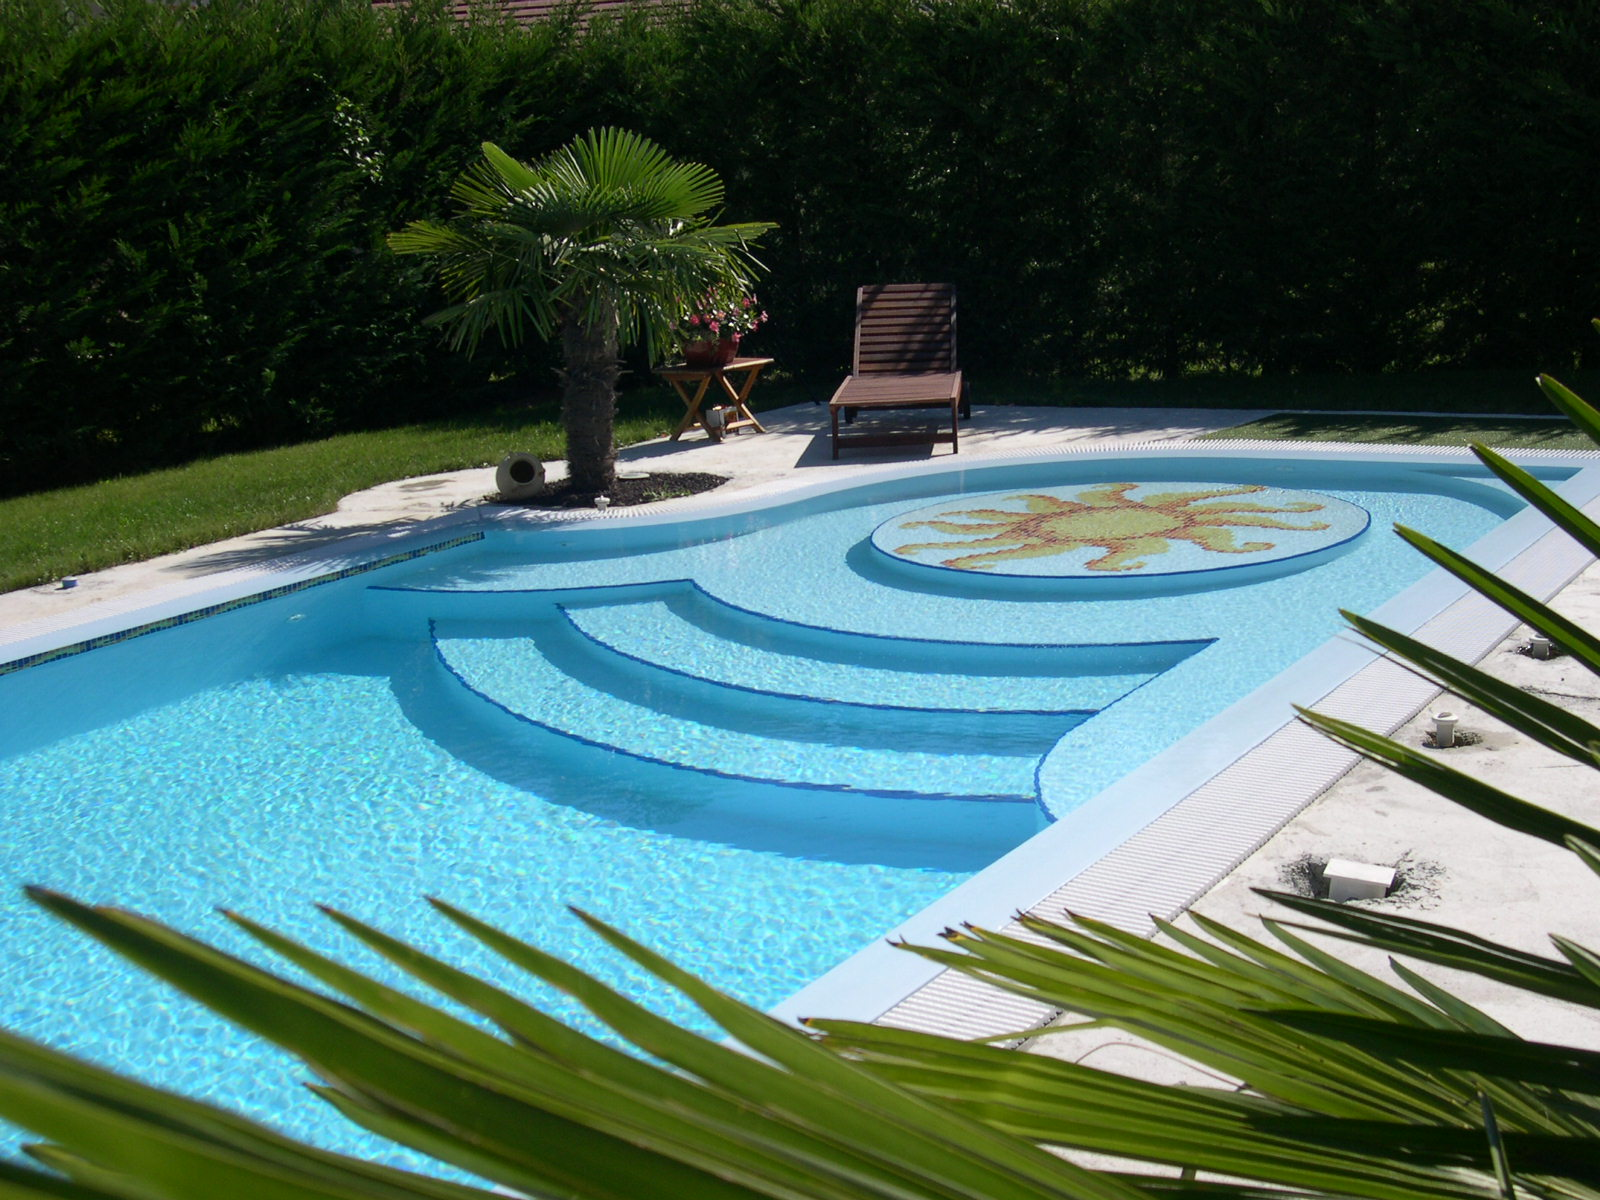 Que choisir piscine en coque ou piscine traditionnelle for Construction piscine traditionnelle